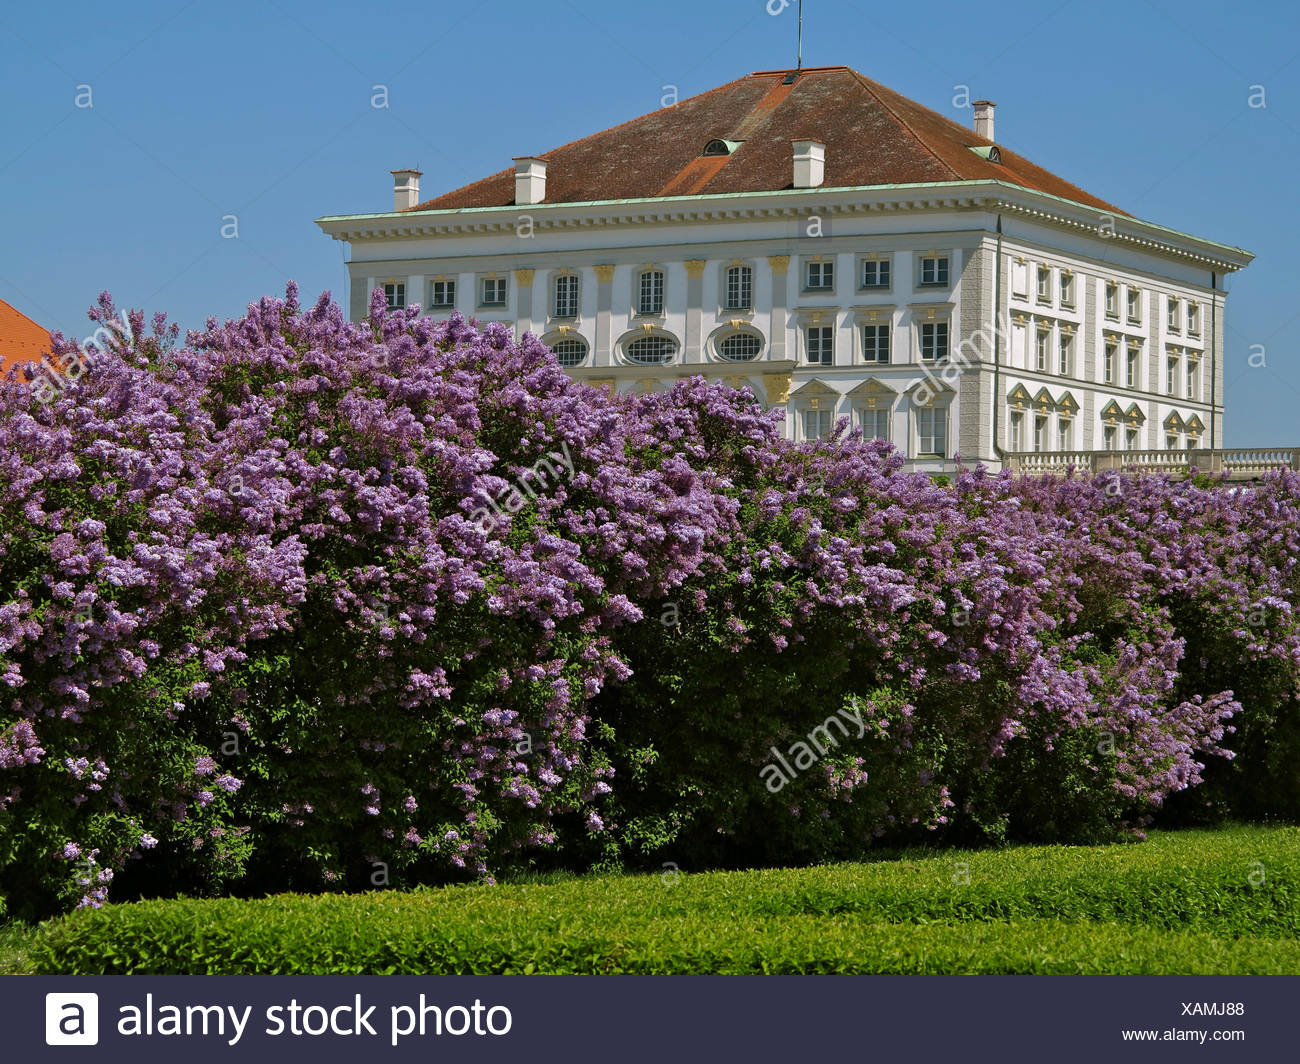 Nymphenburg Palace, Baroque, built in 1664-1703 by Agostino Barelli, Effner and Viscardi, large lilacs - Stock Image